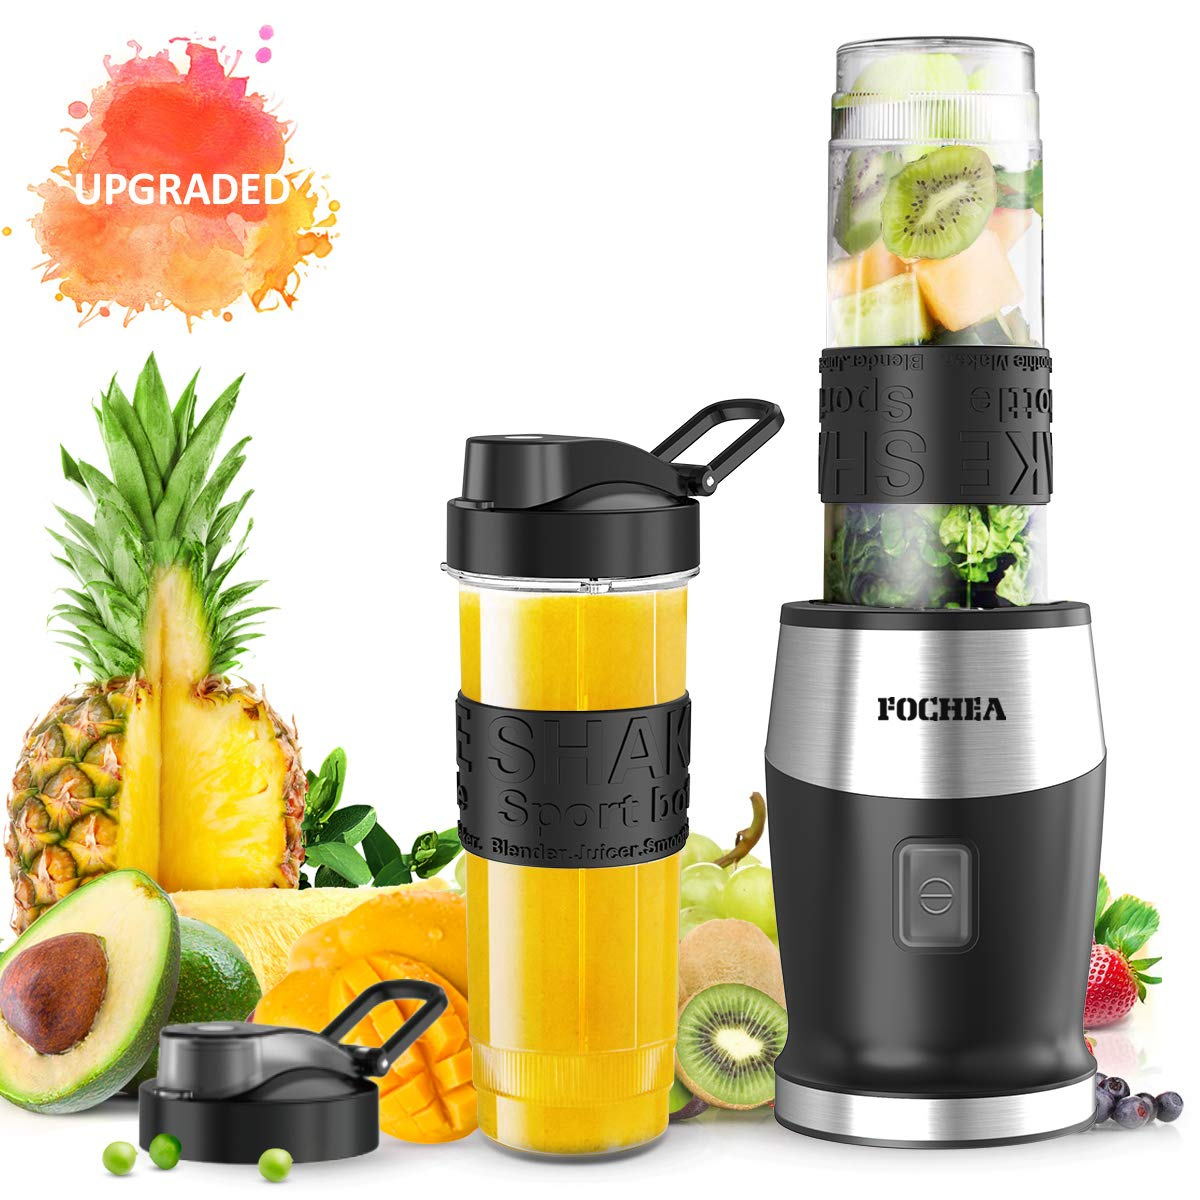 Smoothie Blender,Personal Blender Single Serve Small Blender for Juice shakes and Smoothies,with Two 570ml BPA-Free Portable Blender Bottles, 500W/24,000 RPM